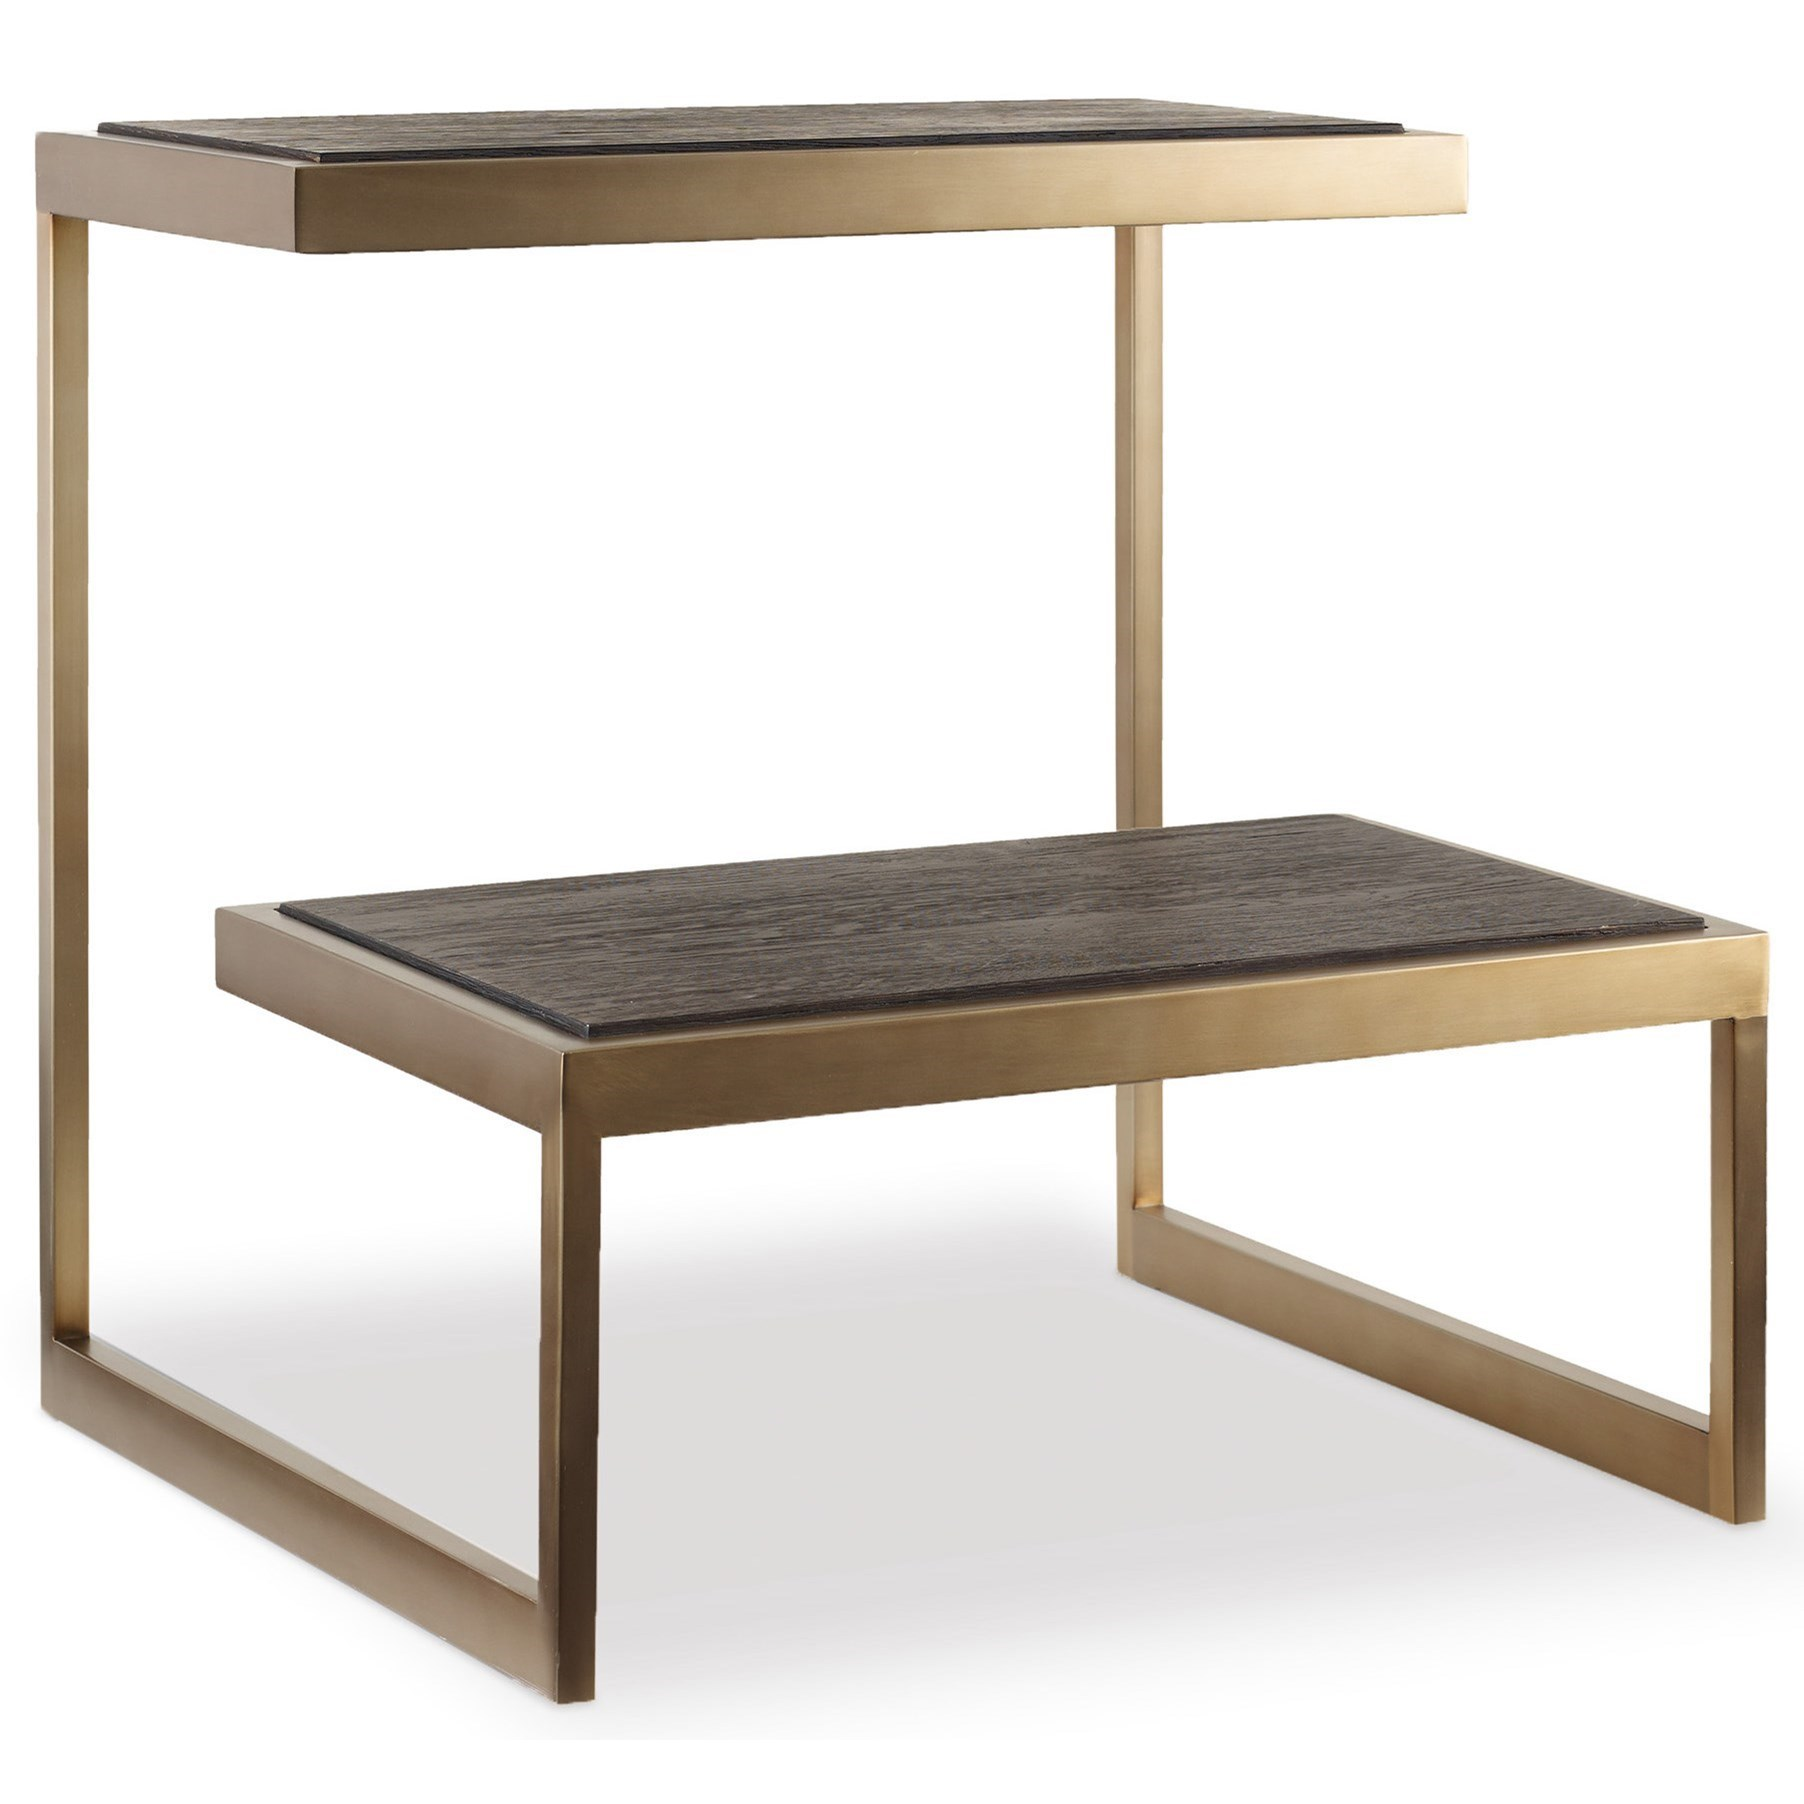 Hooker furniture curata modern end table knight for Modern accent tables